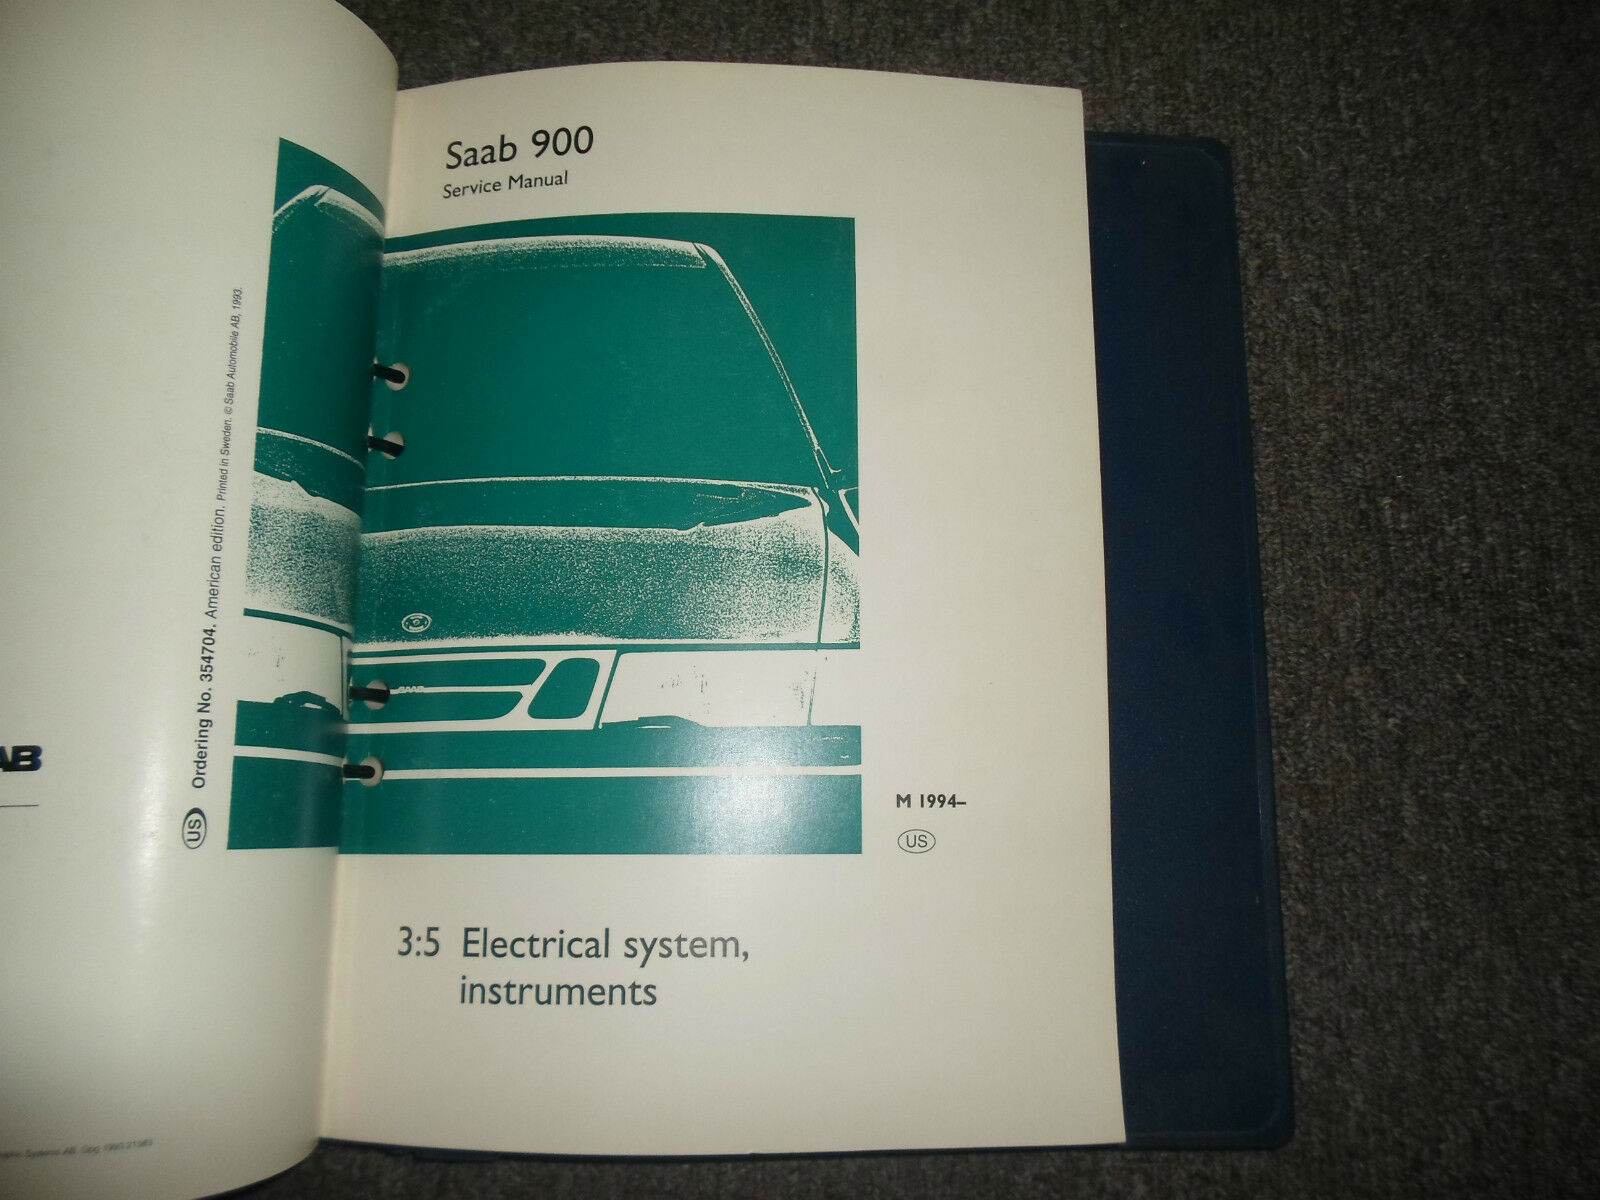 Saab 900 Ignition Switch Wiring Diagram 39 Images Diagrams C900 For On 1994 Electrical Instruments System 57resize665